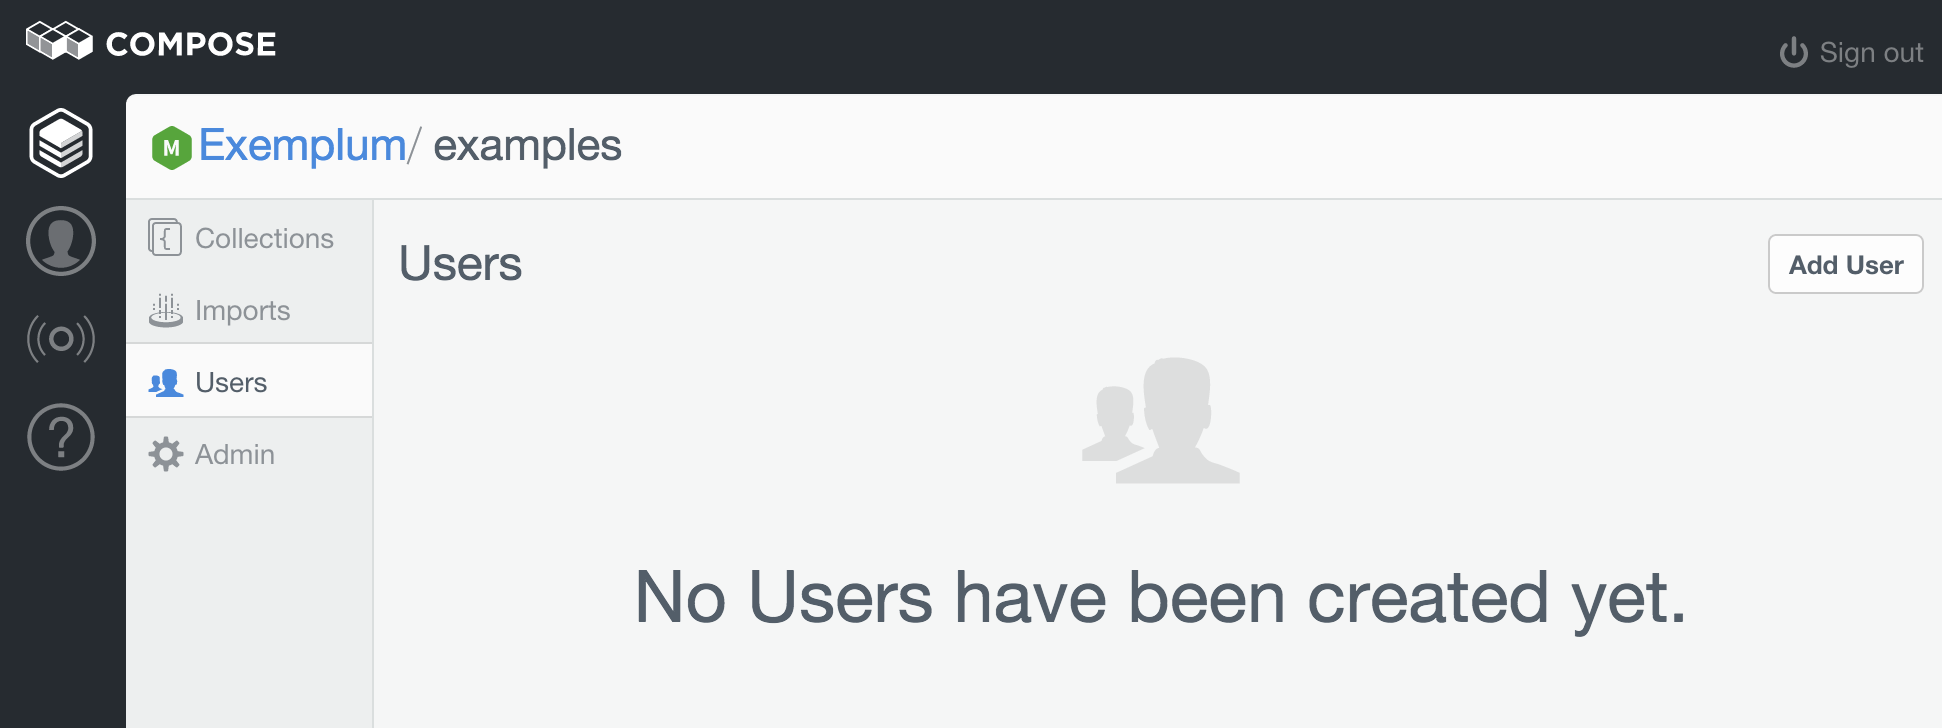 No Users